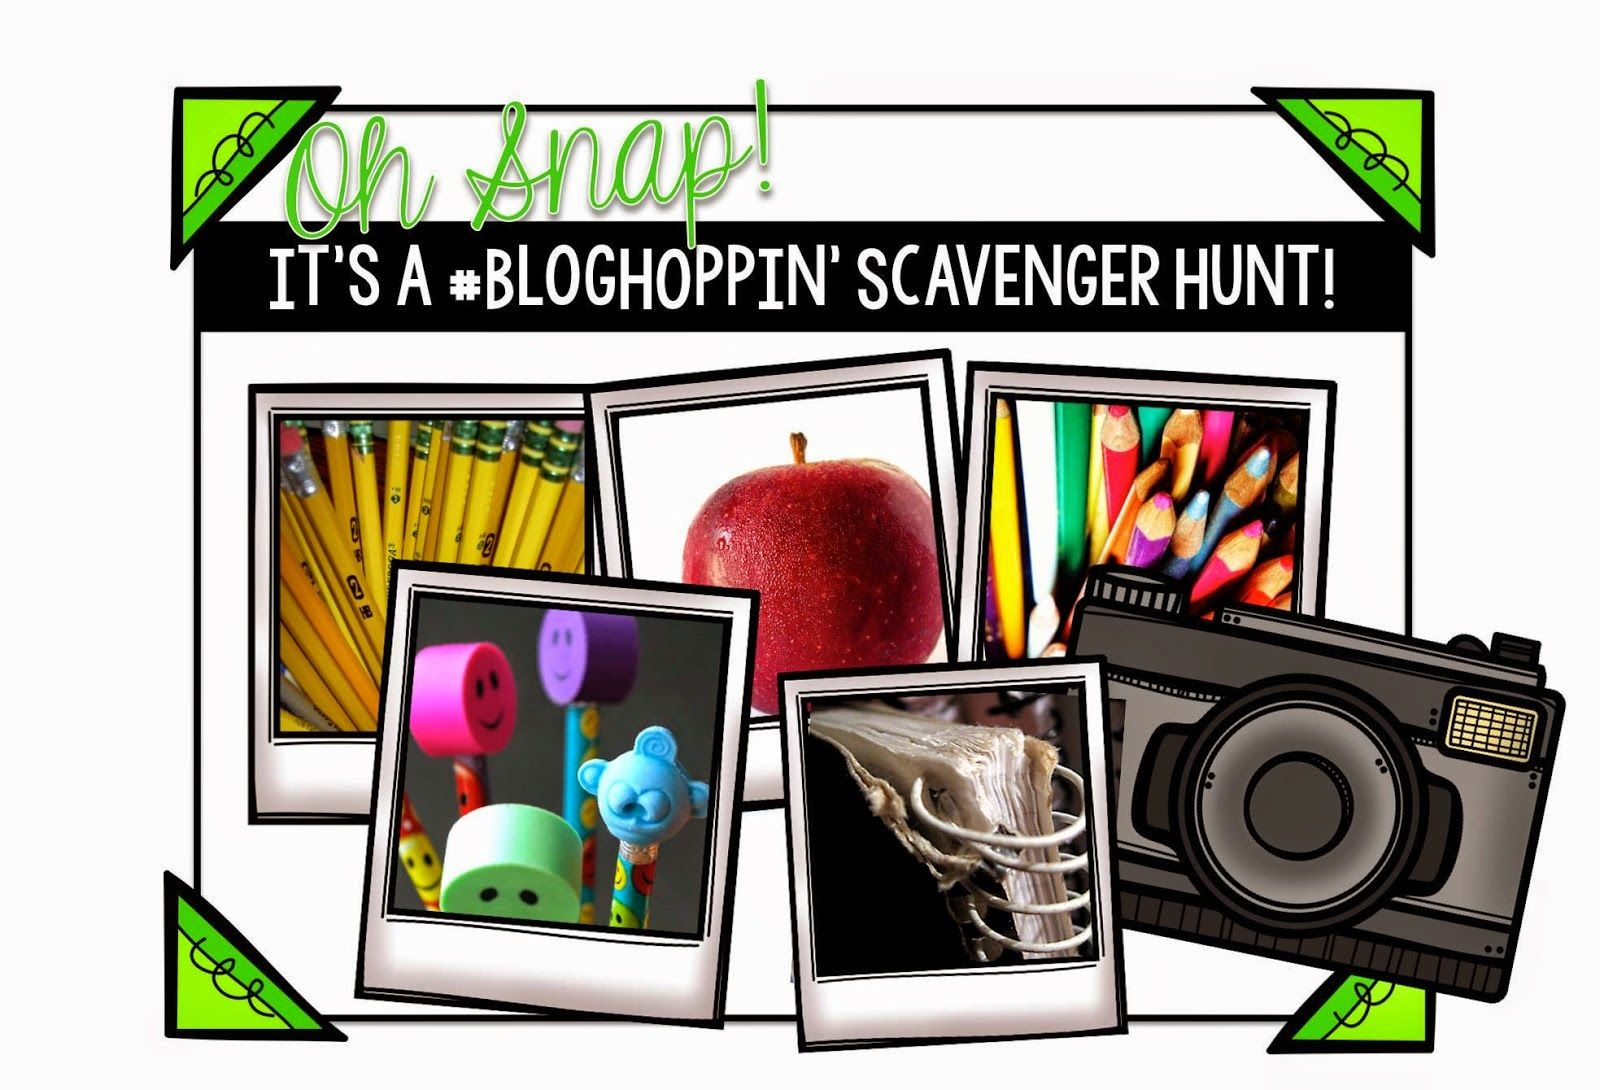 Blog Hoppin Scavenger Hunt